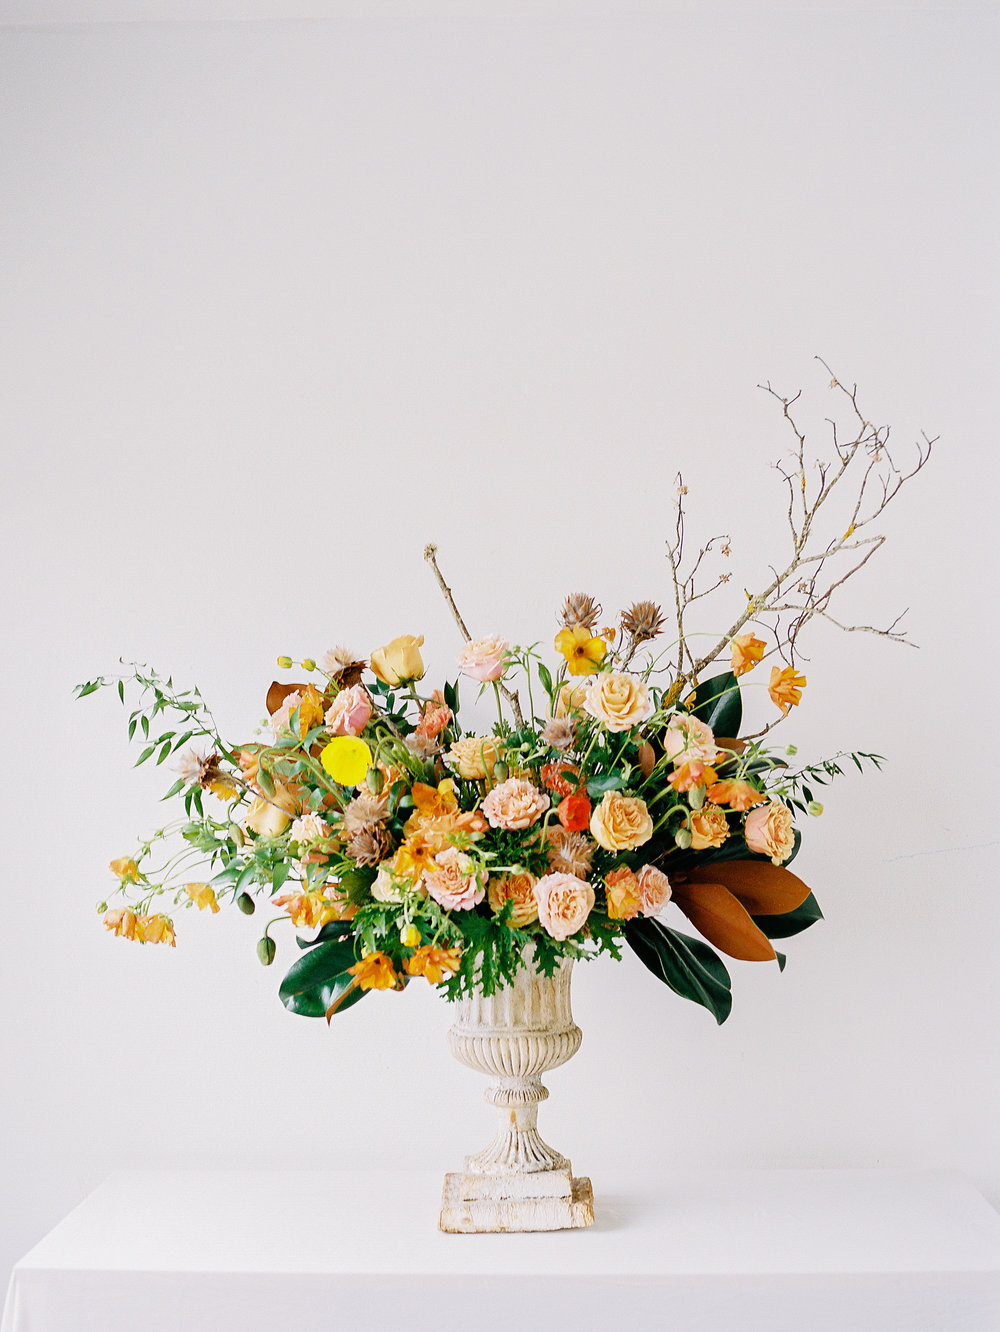 los angeles wedding floral designer, florist